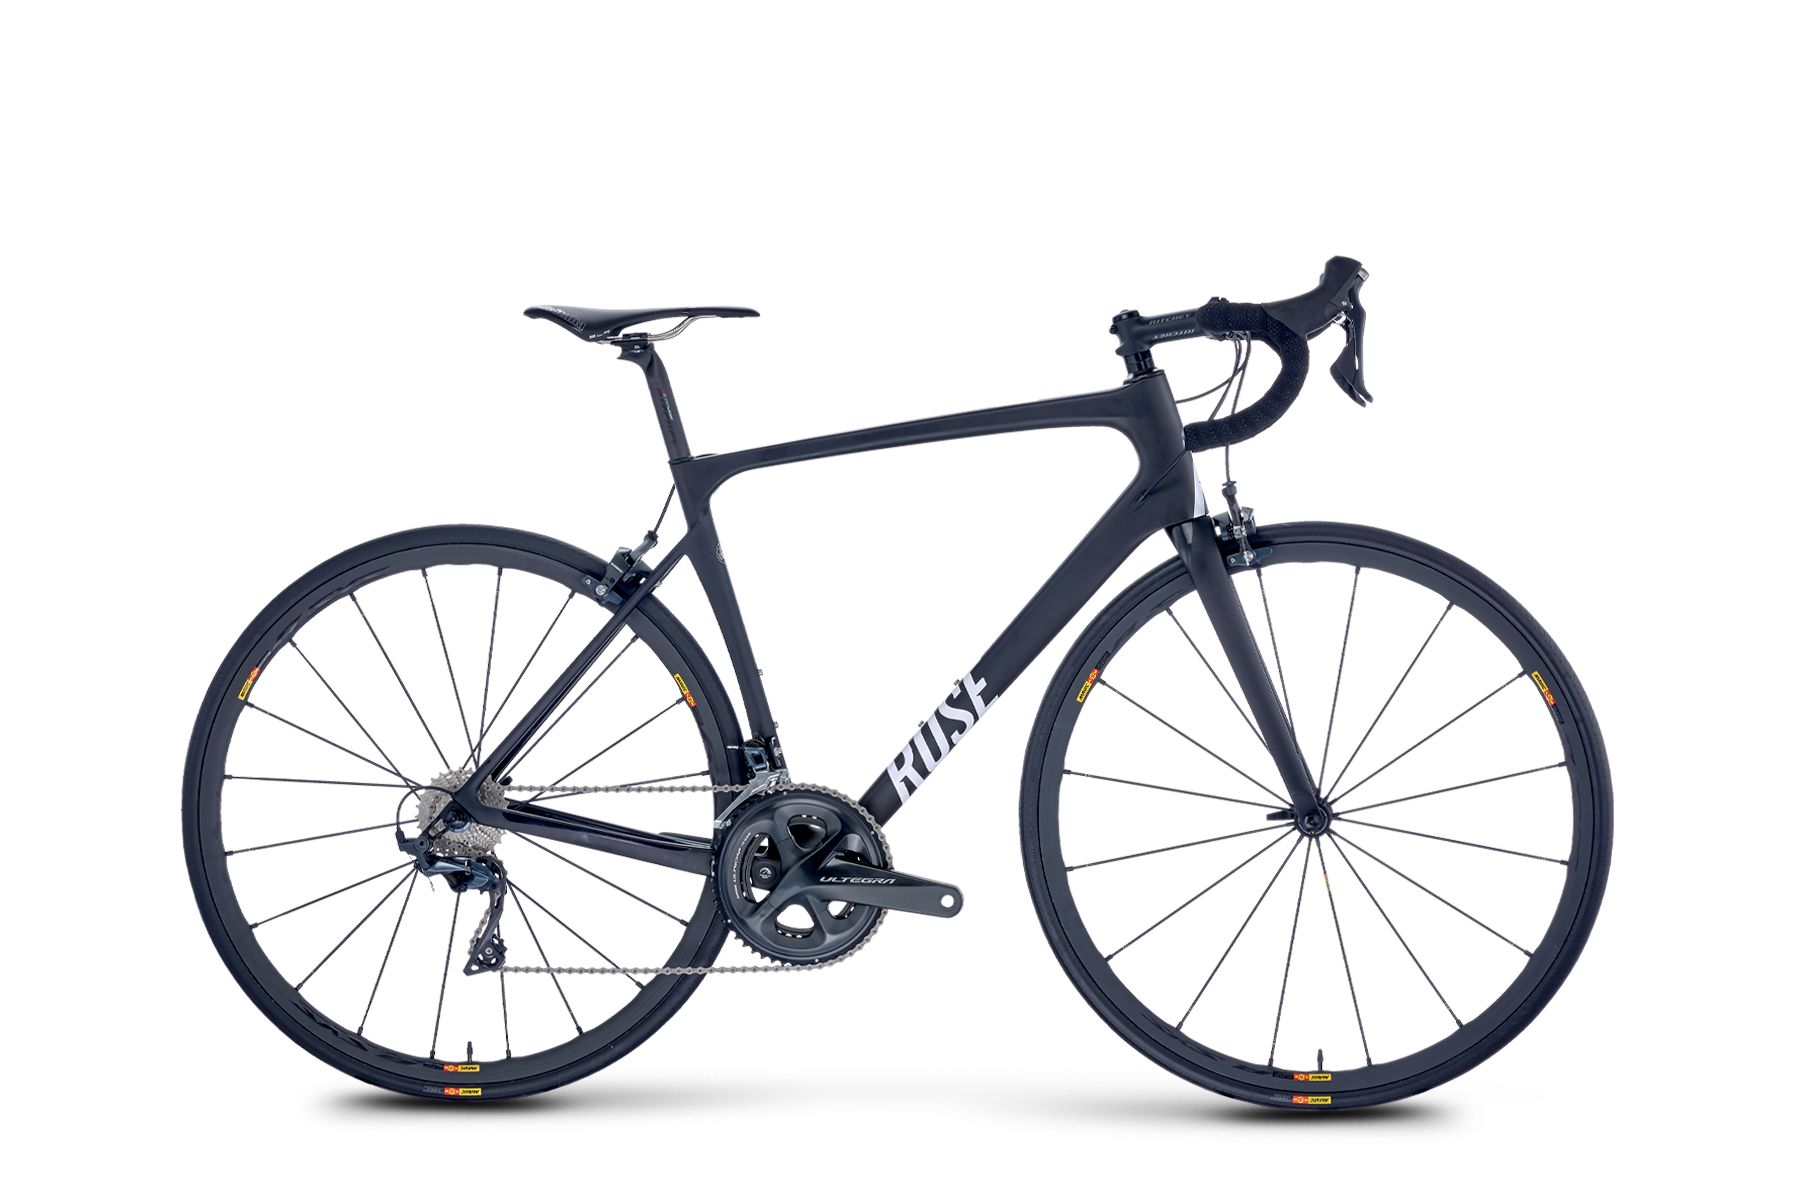 X-LITE SIX ULTEGRA Showroom Bike Size: 57cm